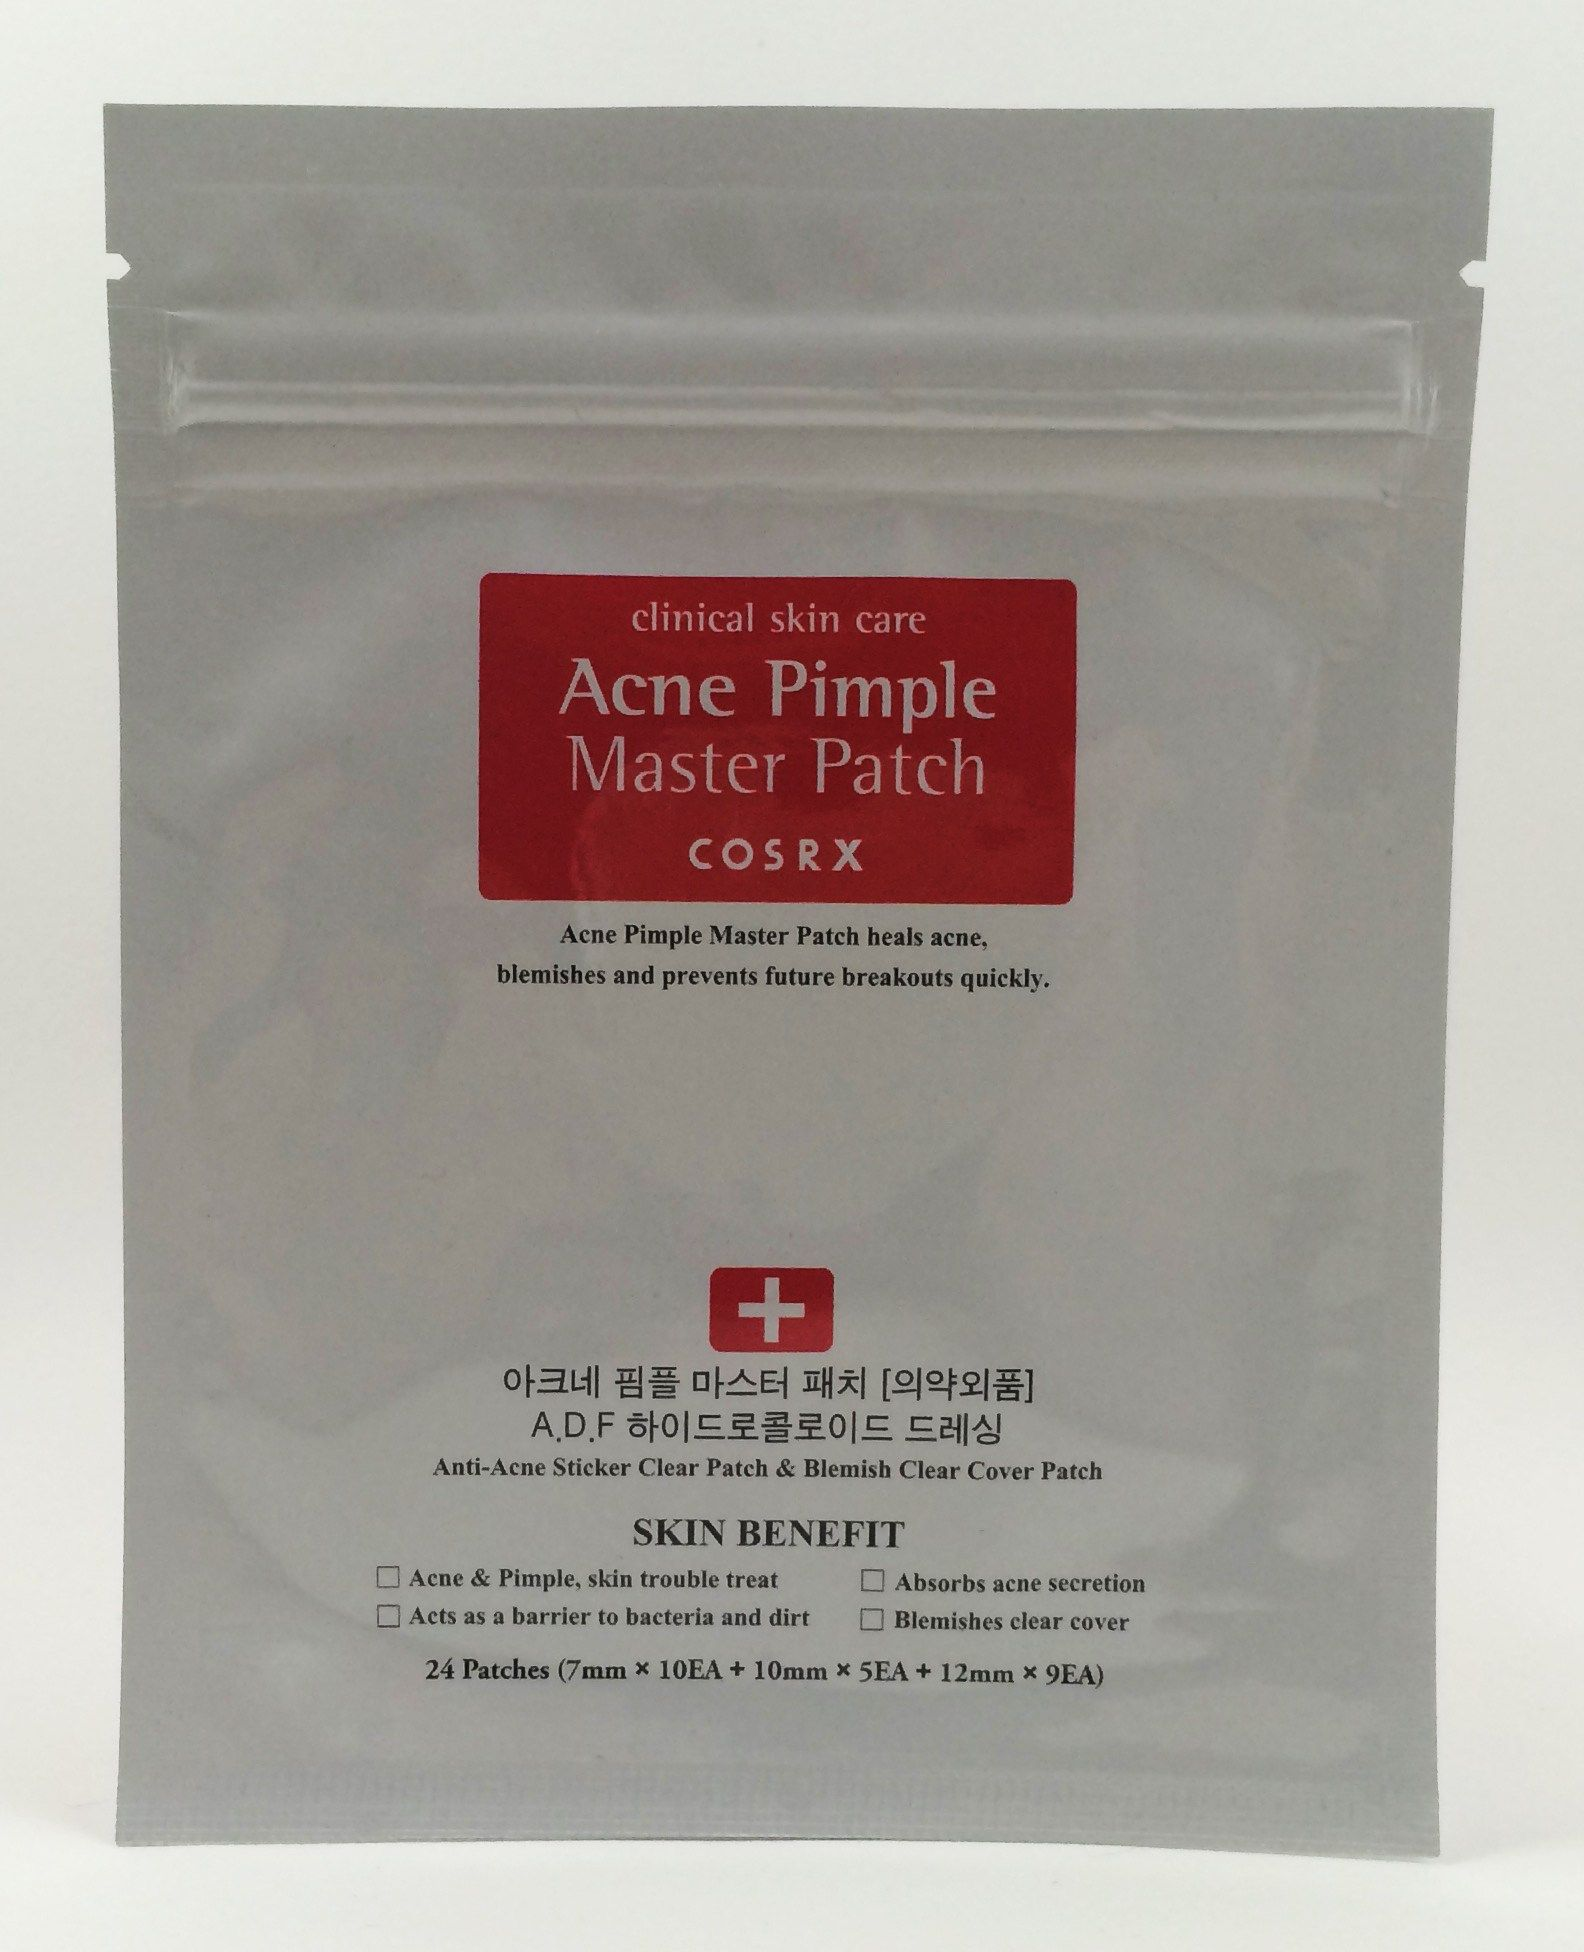 Acne Pimple Master Patch by cosrx #7